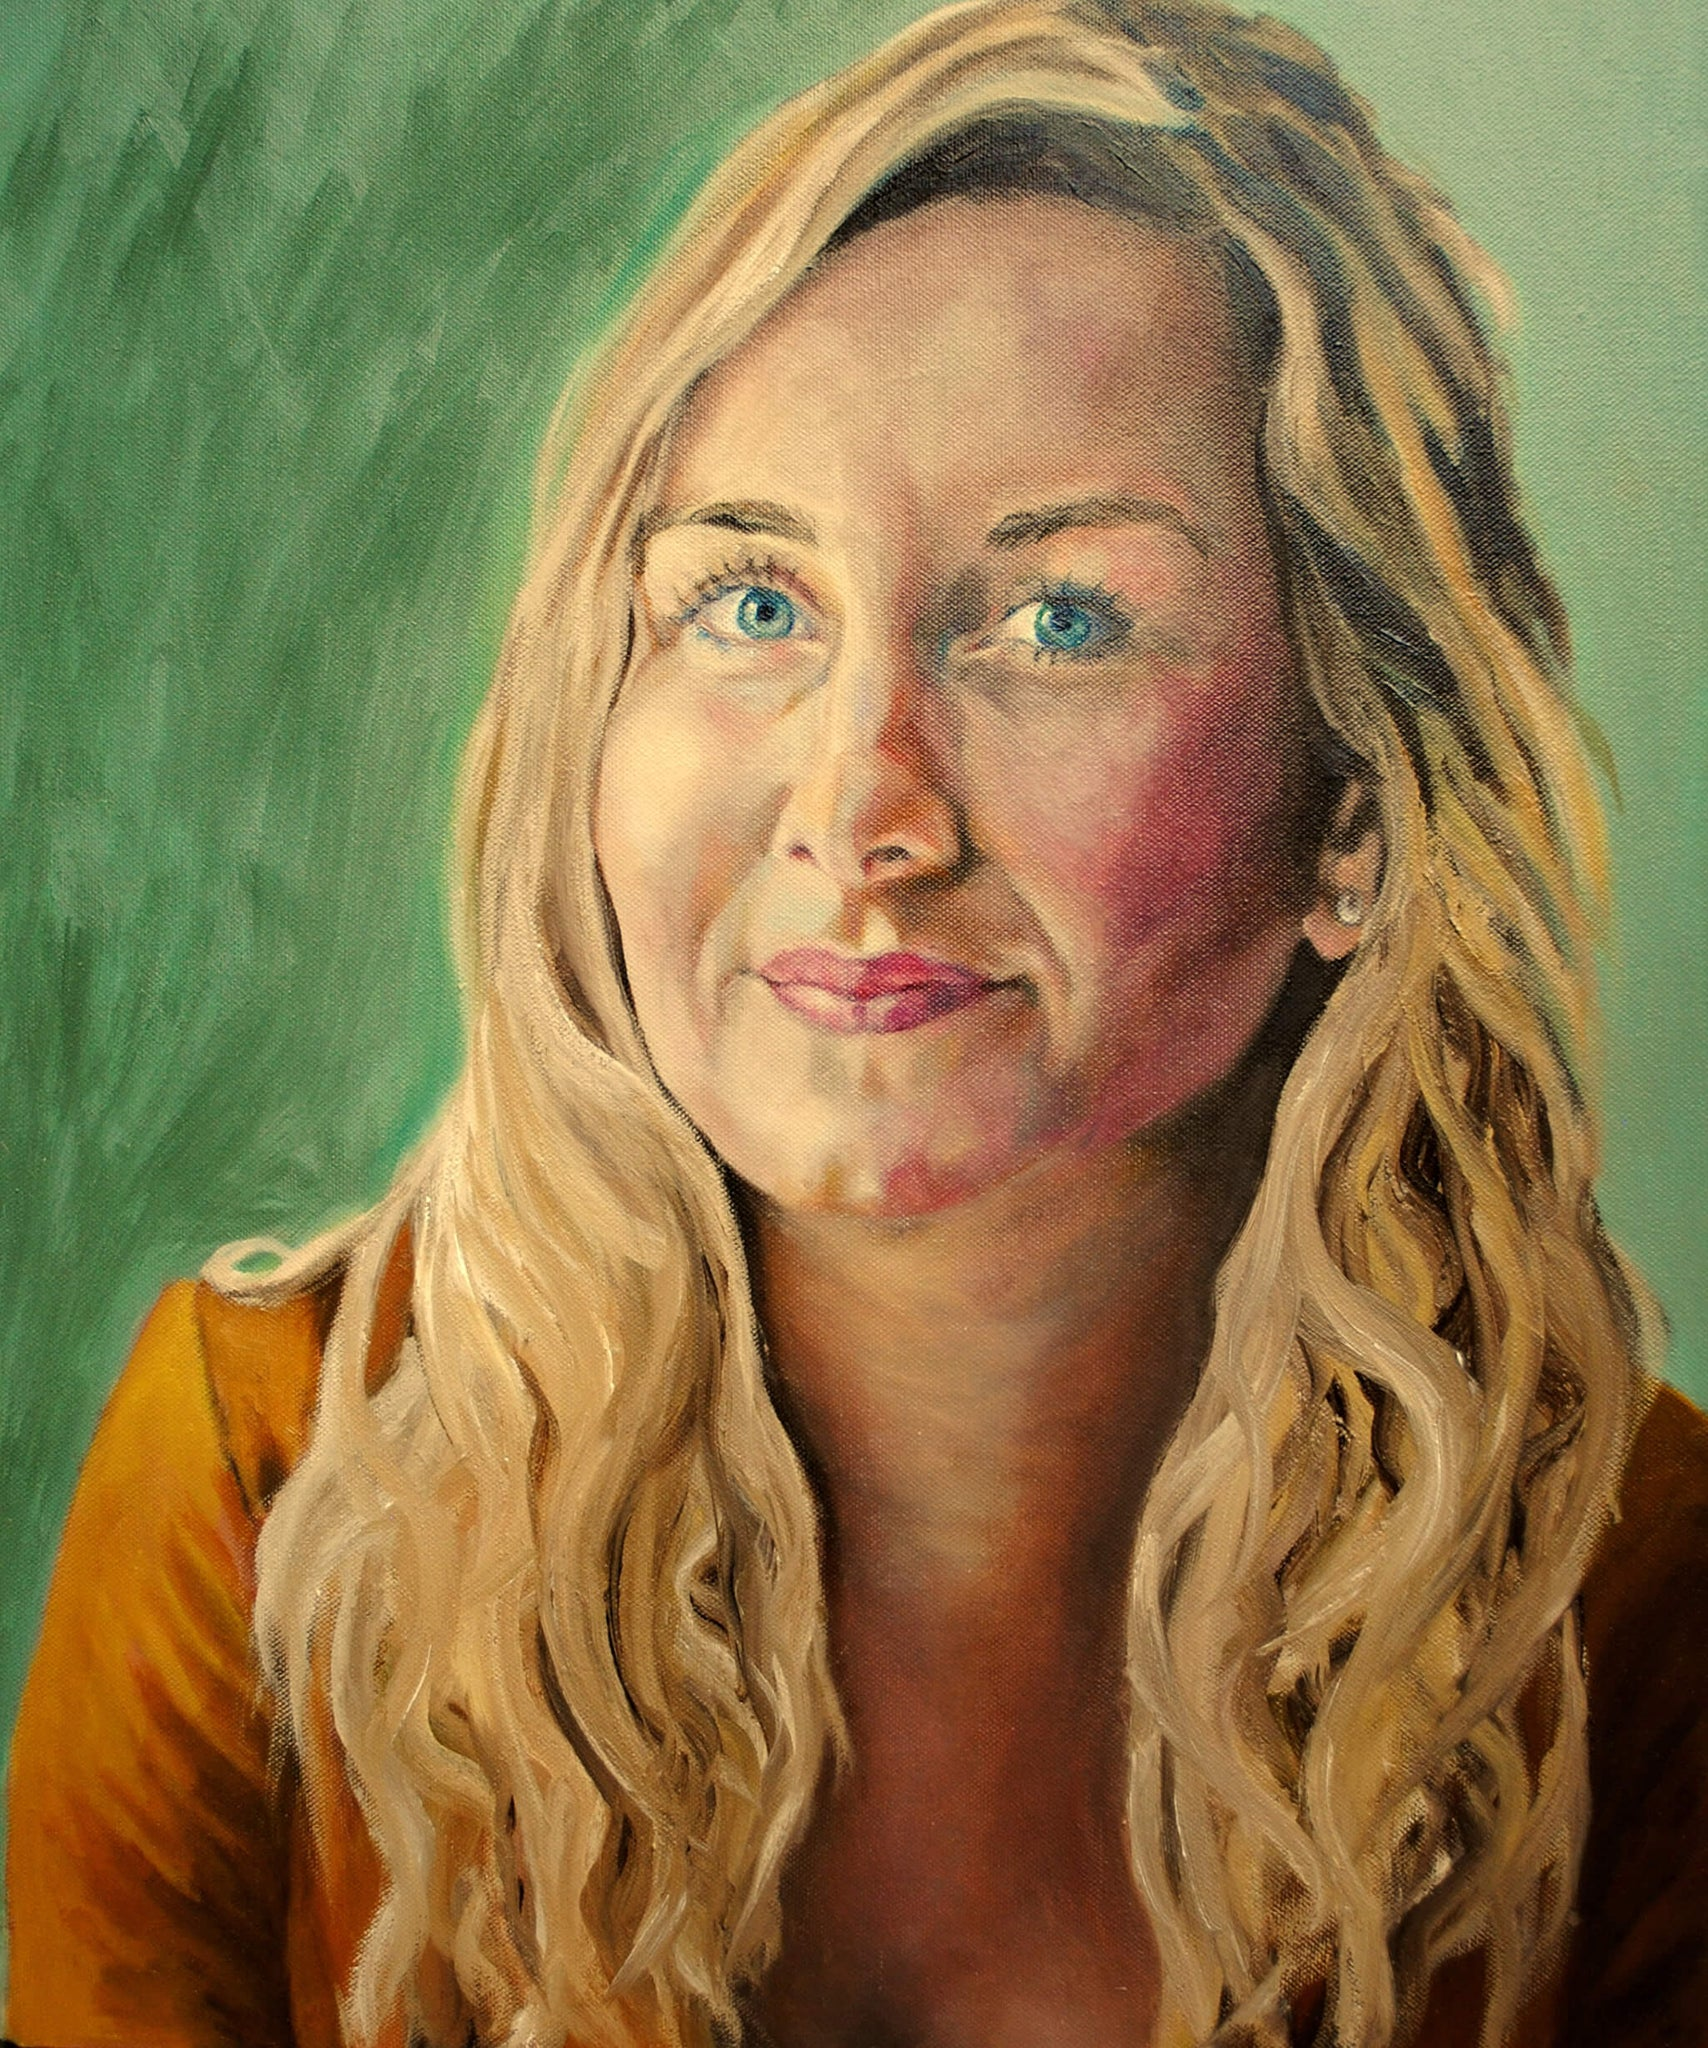 Eleanor Gibson commissioned portrait in oils on canvas artwork by Stella Tooth.